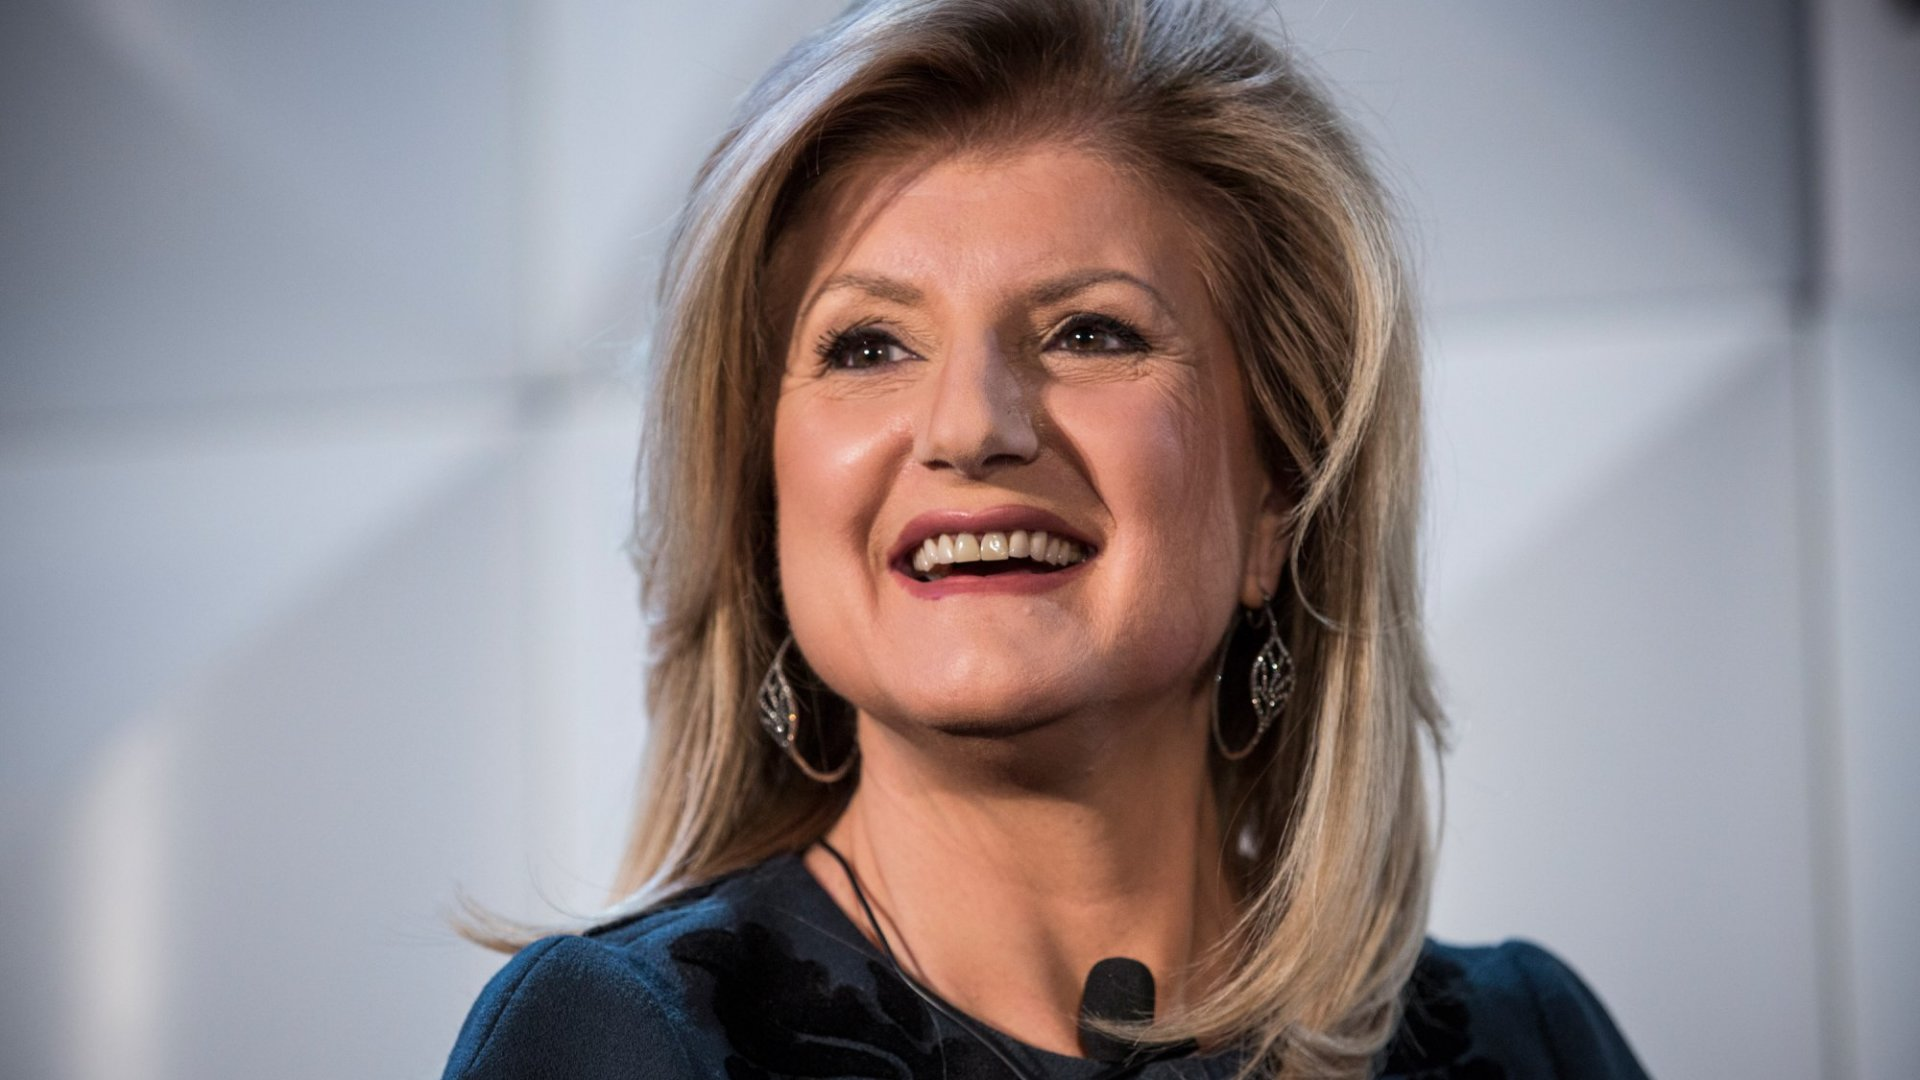 Arianna Huffington and 9 Other Leaders on the Trends to Watch in 2016